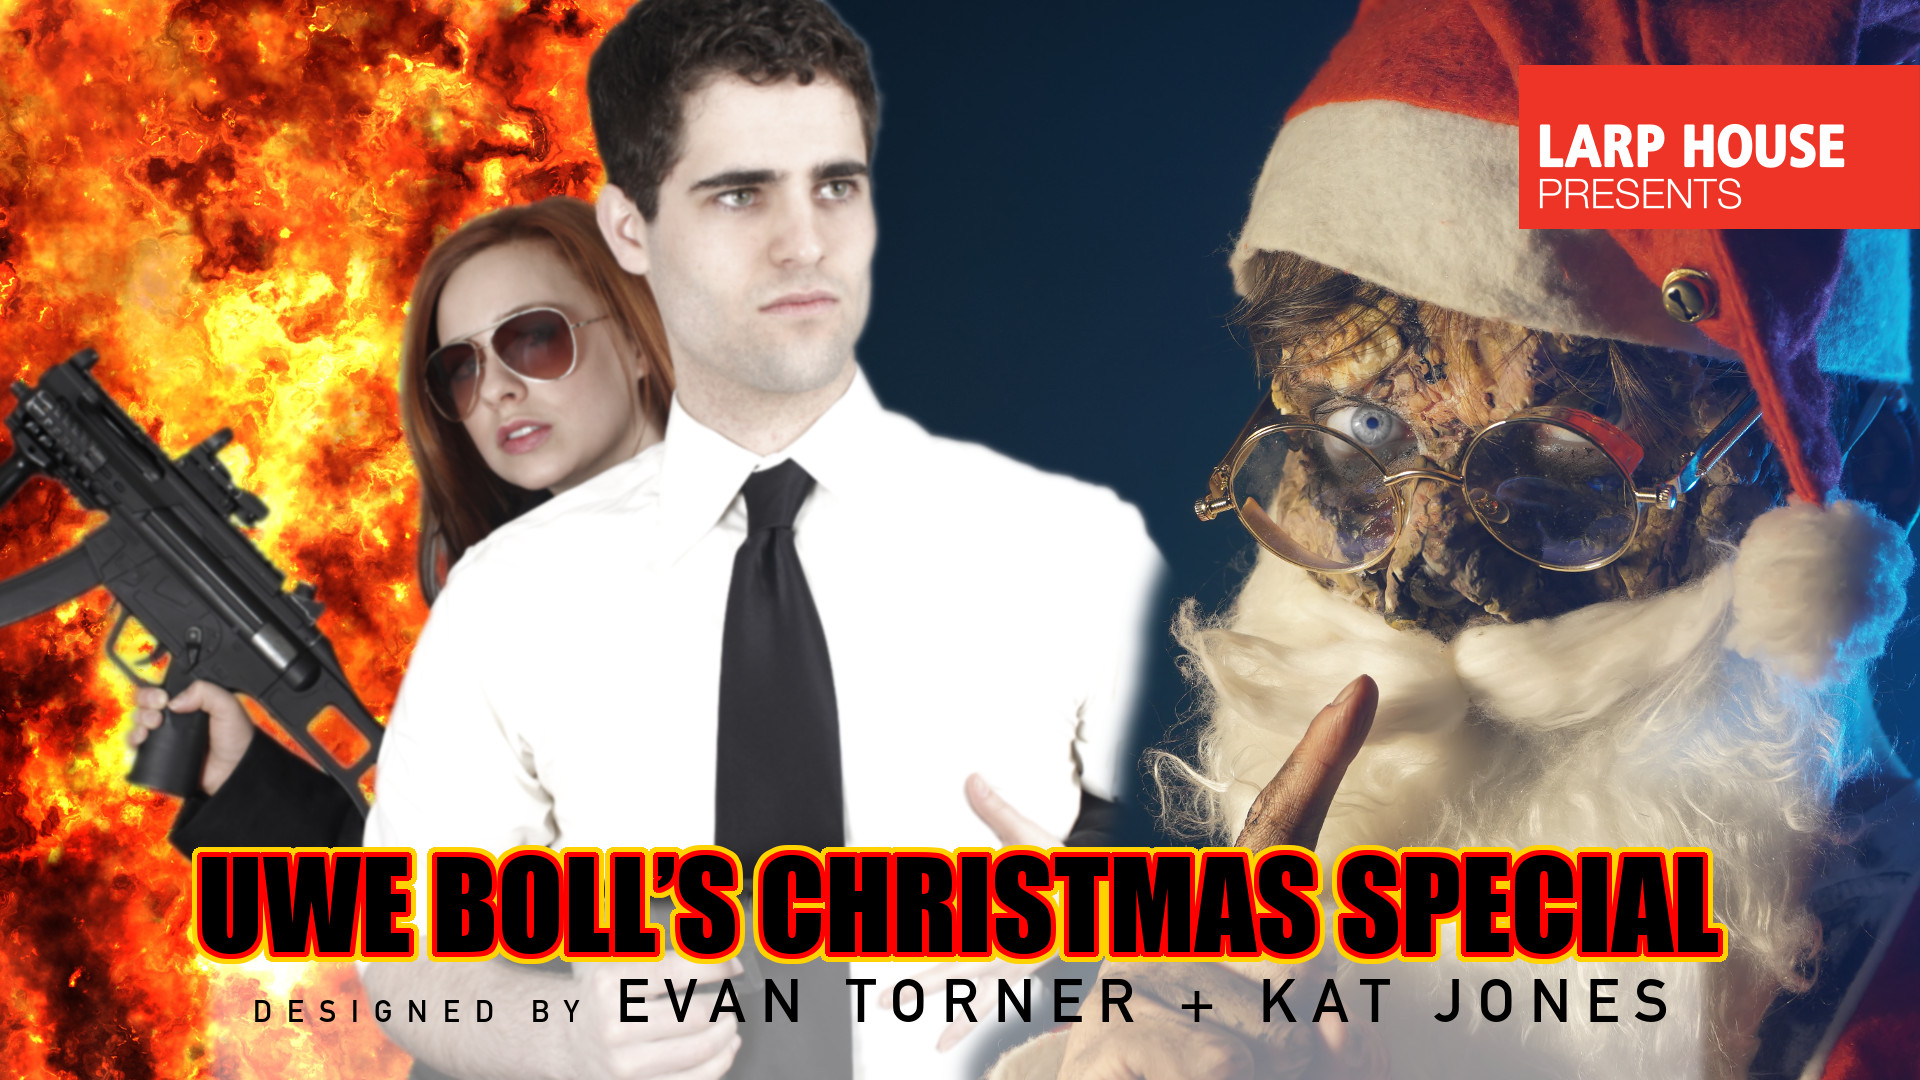 Larp House Presents: Uwe Boll's Xmas Special